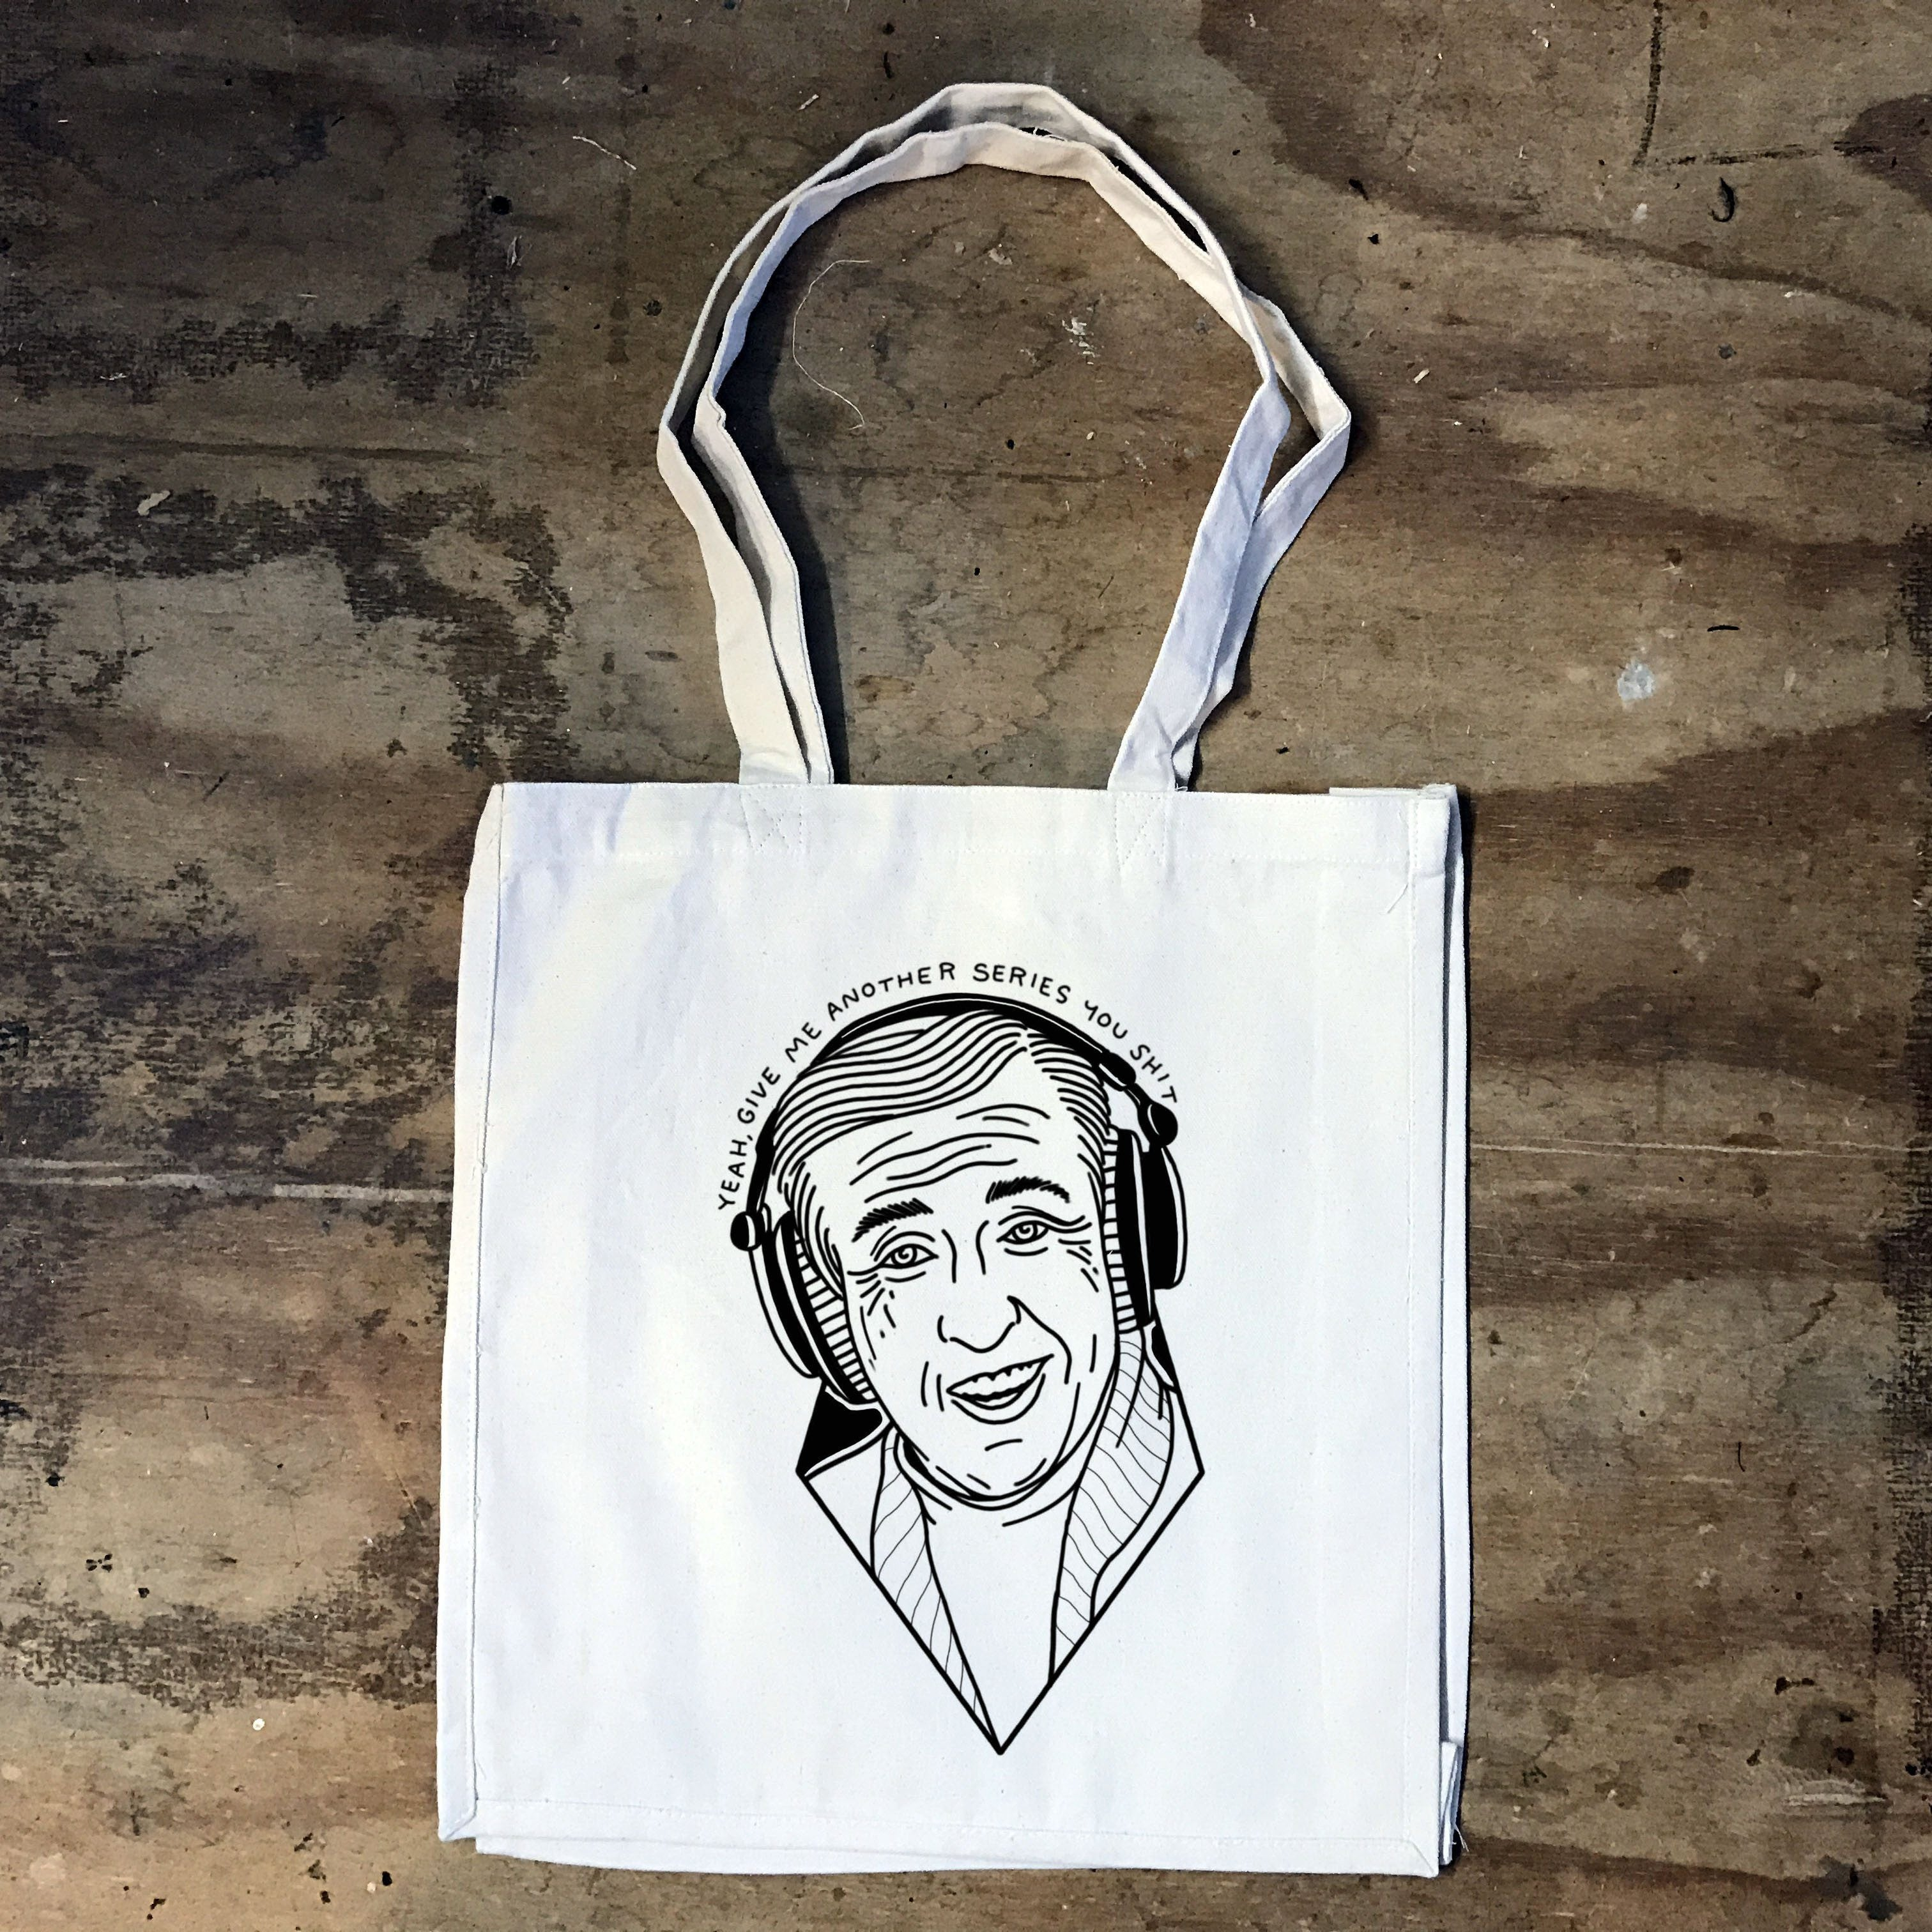 Alan Partridge - Give me another Series - Tote Bag - Jiggle Apparel